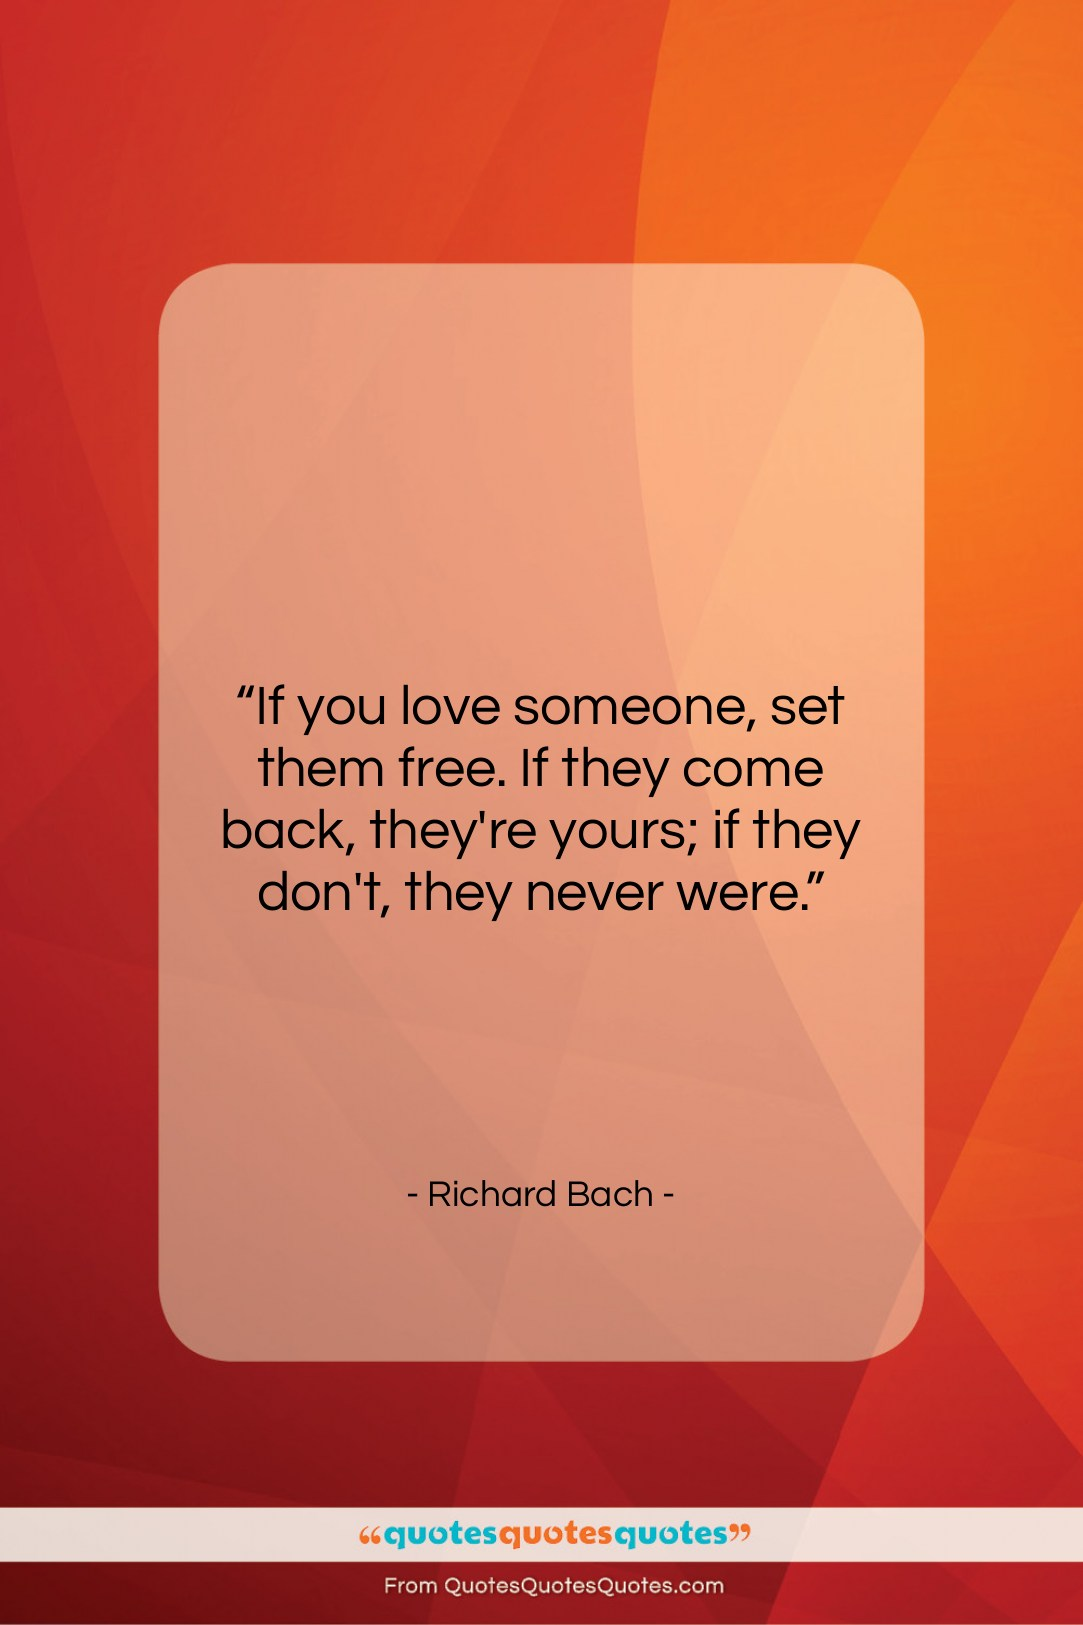 Get The Whole Richard Bach Quote If You Love Someone Set Them